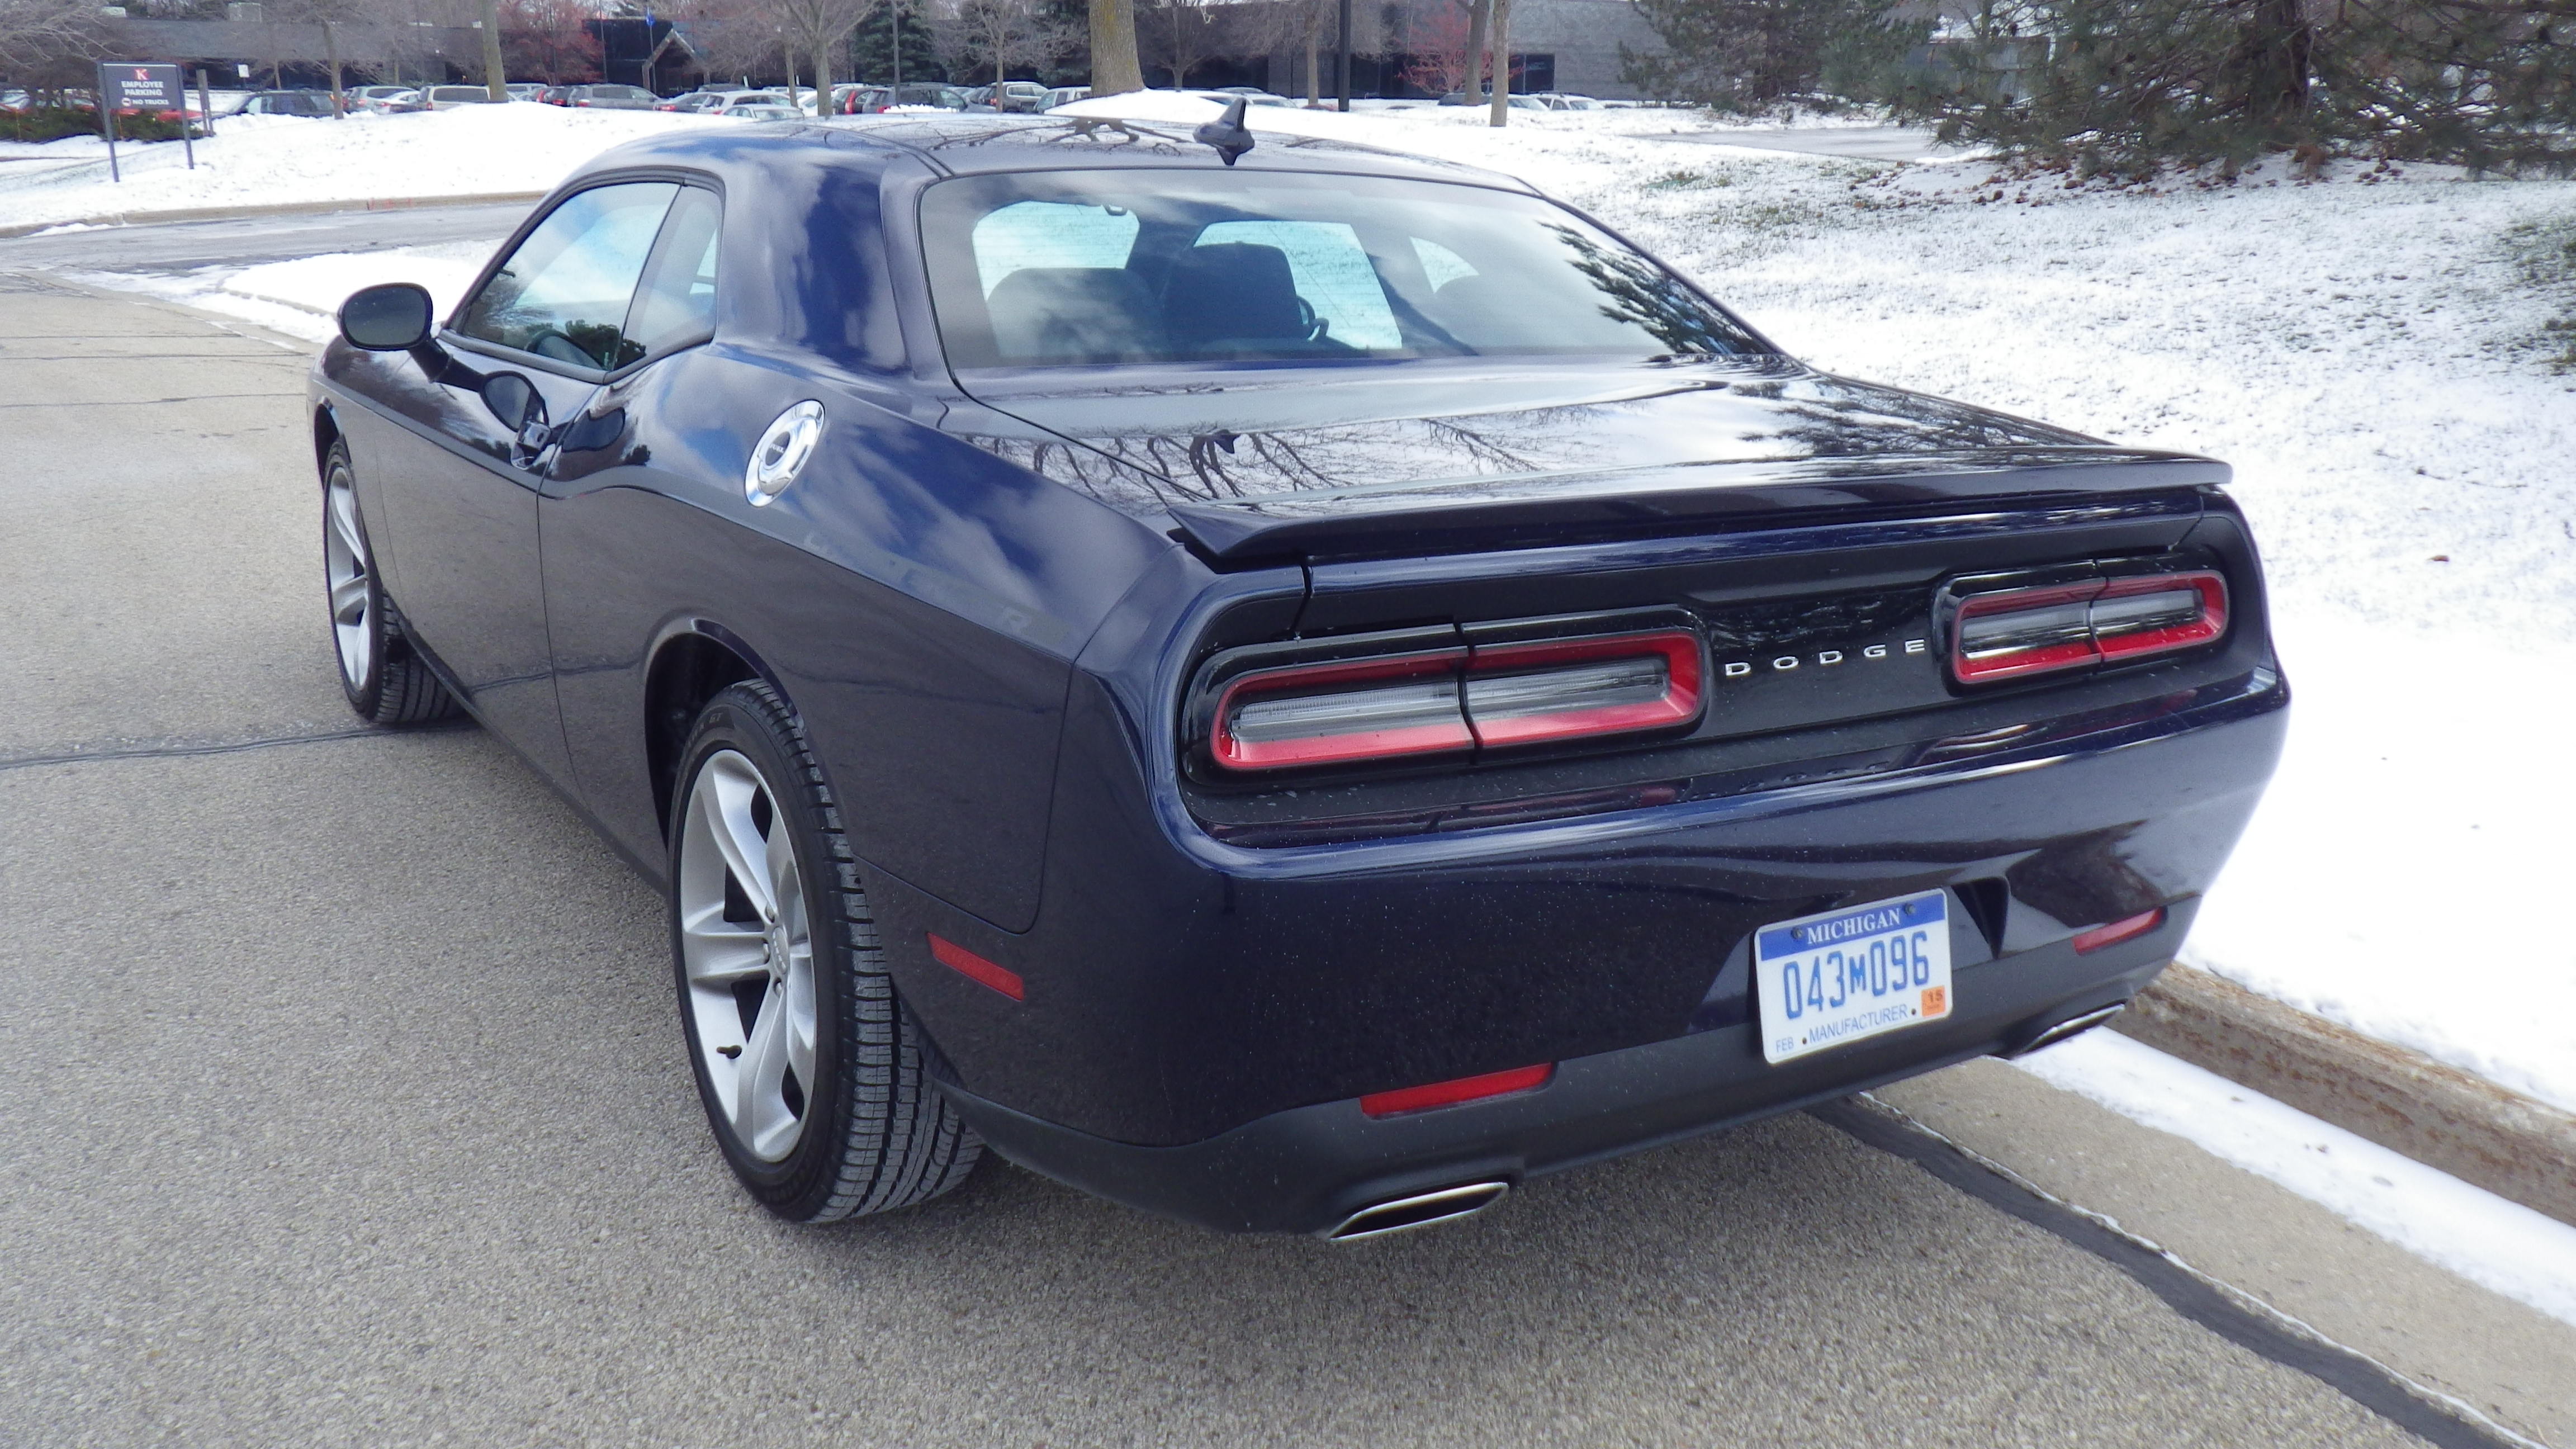 factory decal body challenger vinyl model specific for oem side stripes sxt dodge stripe striping graphic door kits graphics style